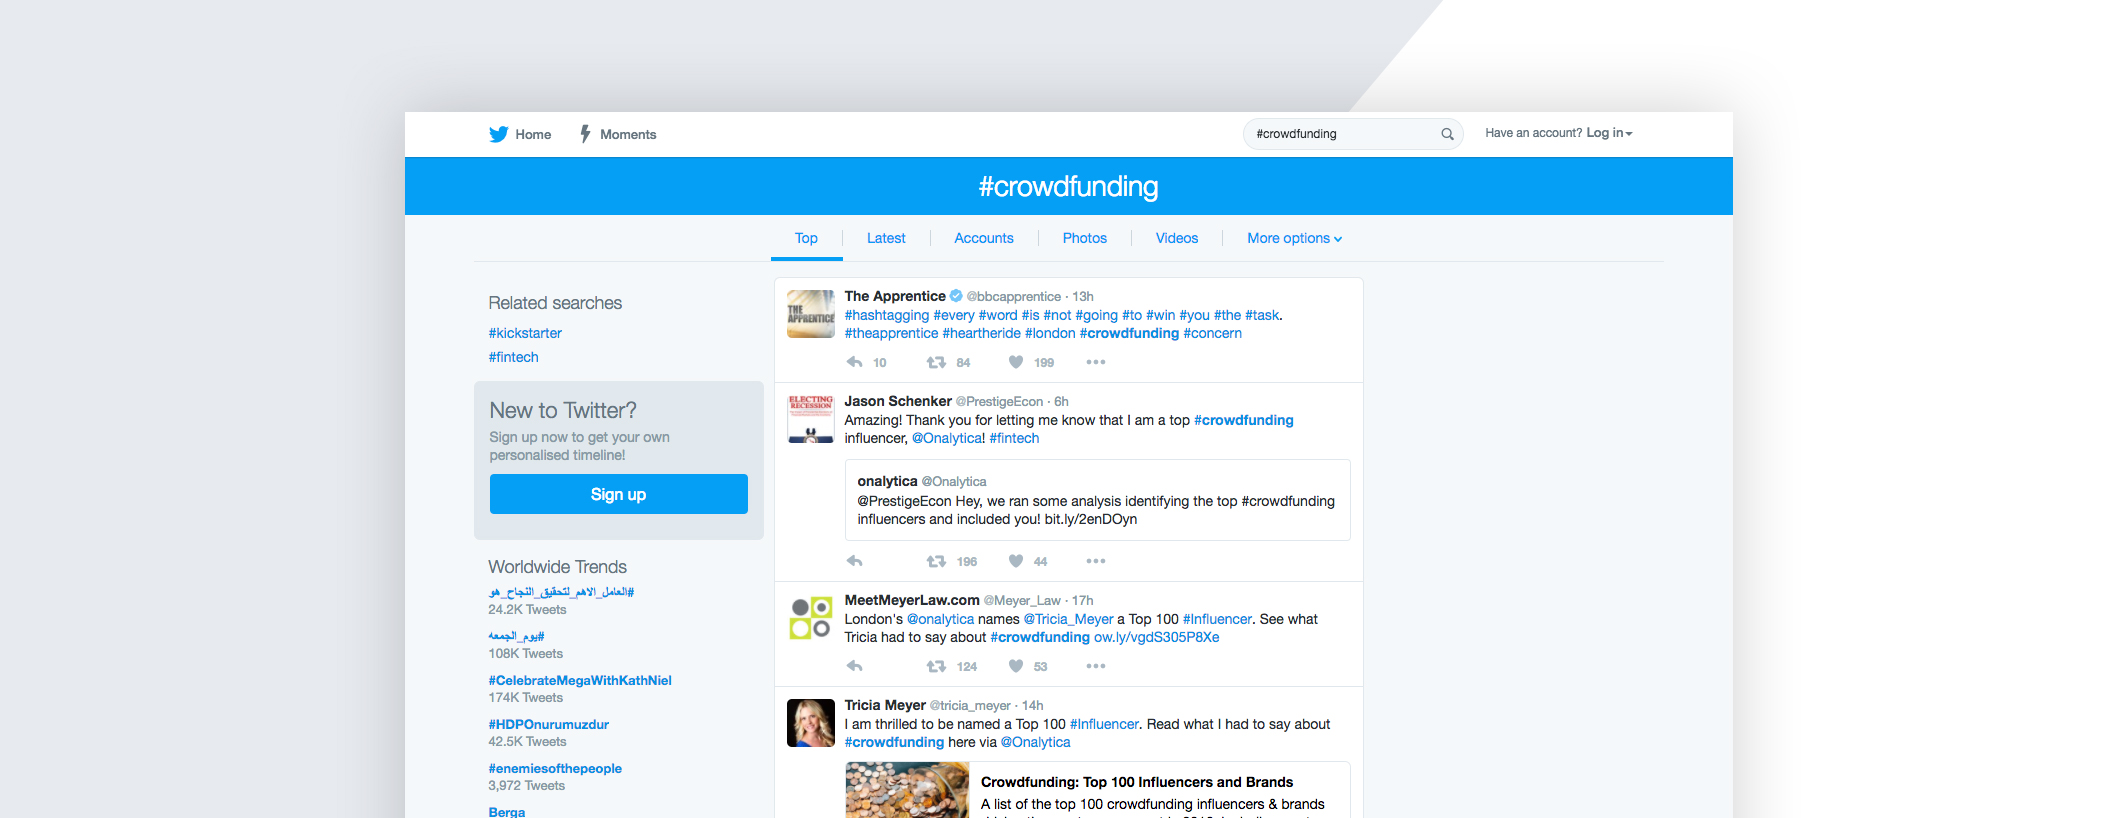 Twitter search operators to find leads for your business